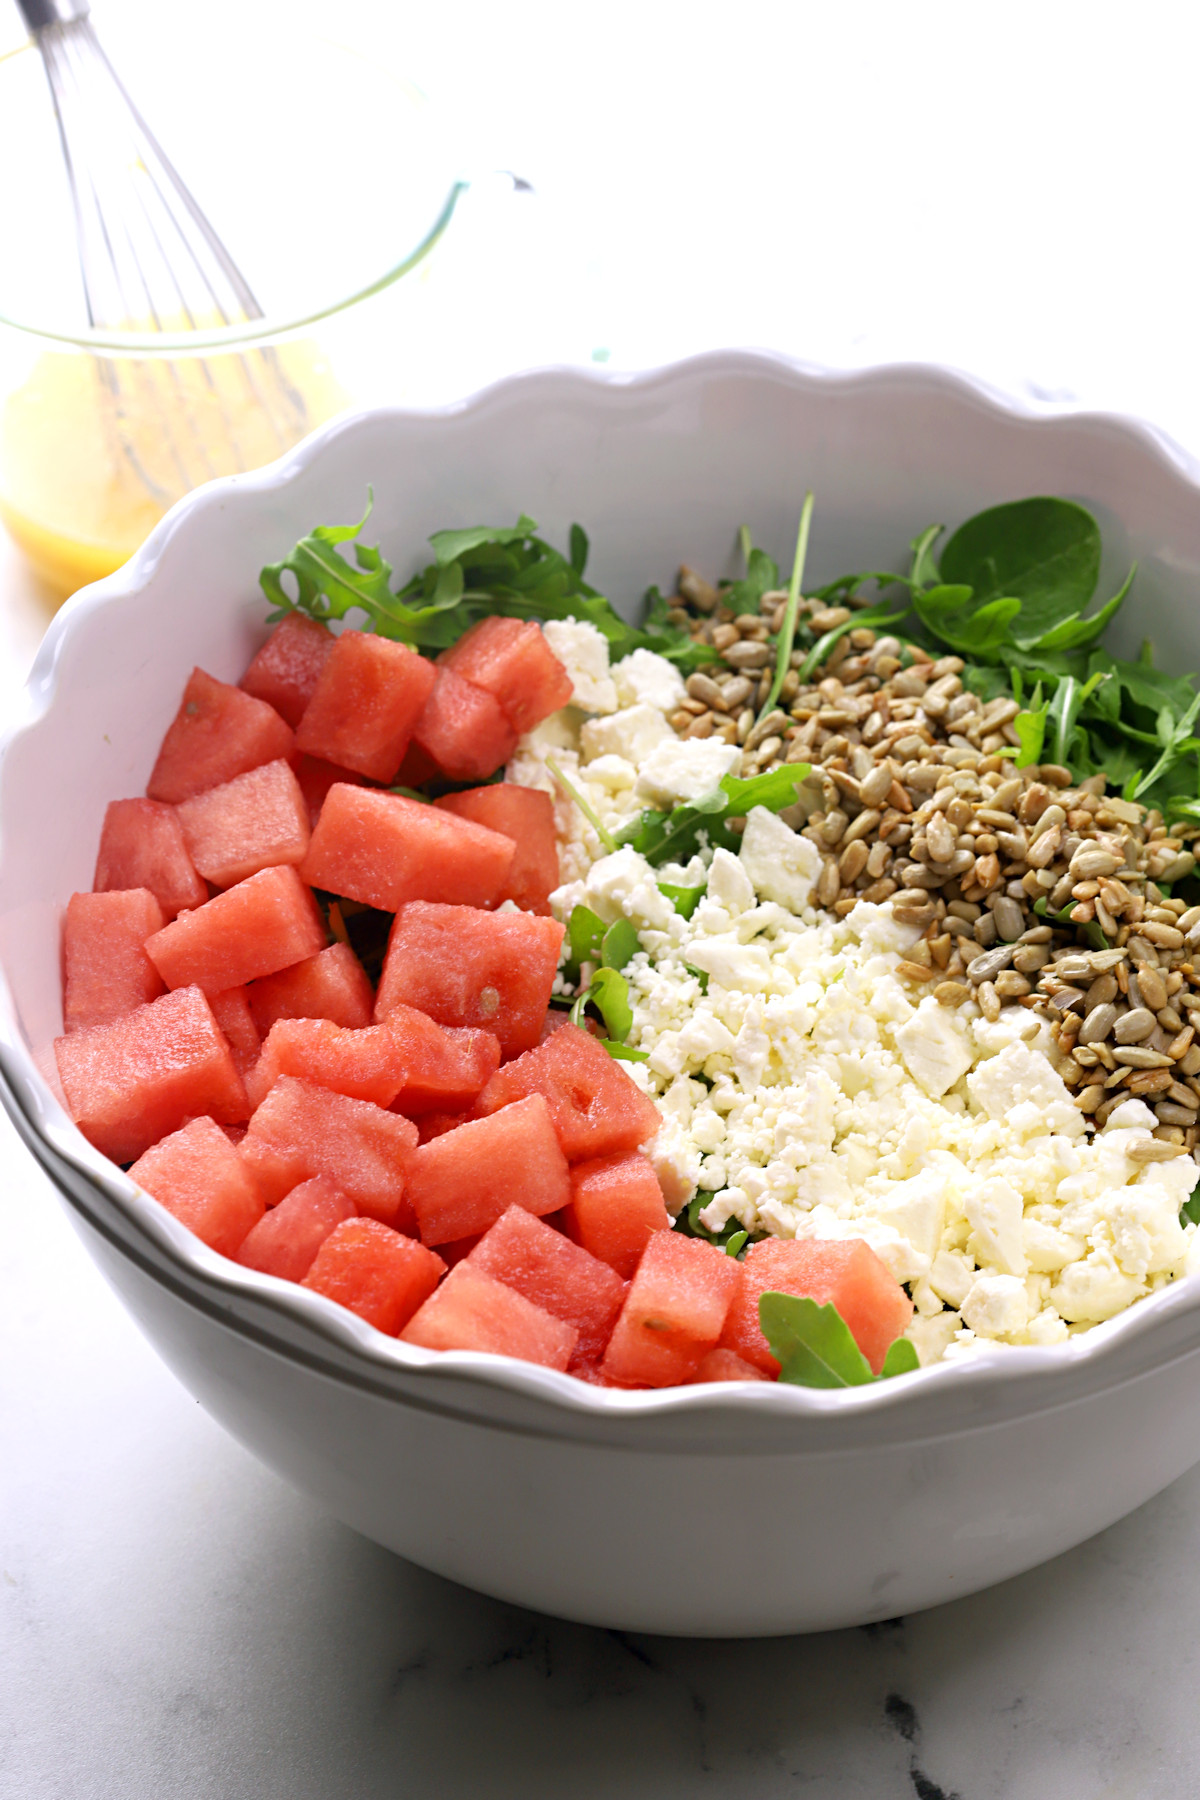 White bowl filled with watermelon, feta cheese, and sunflower seeds.